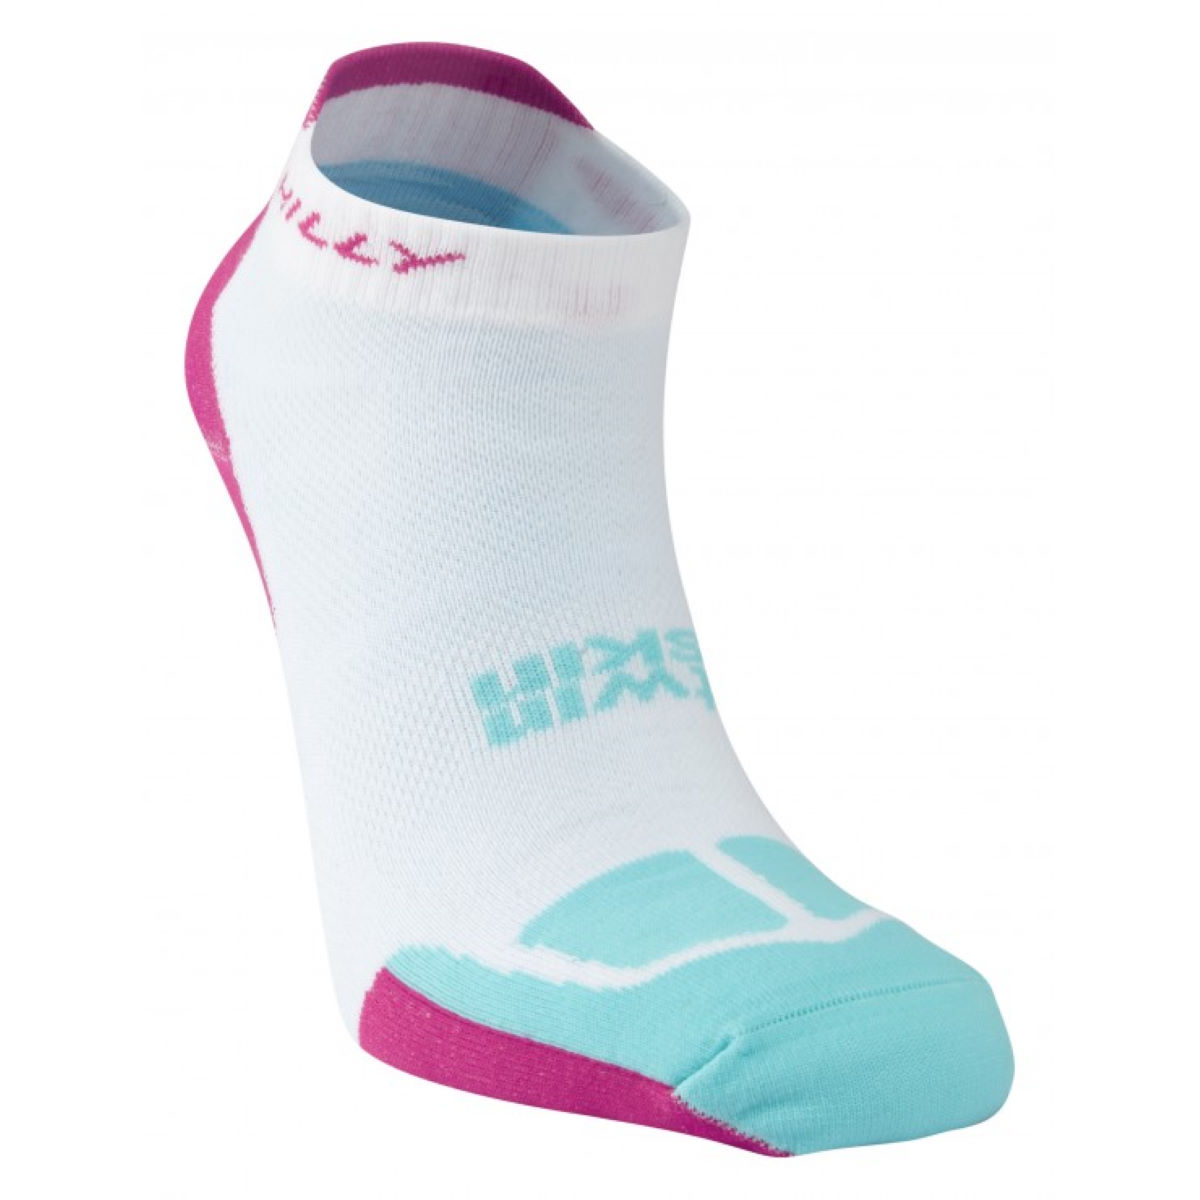 Chaussettes Femme Hilly TwinSkin - S White/Pink/Aqua  Chaussettes